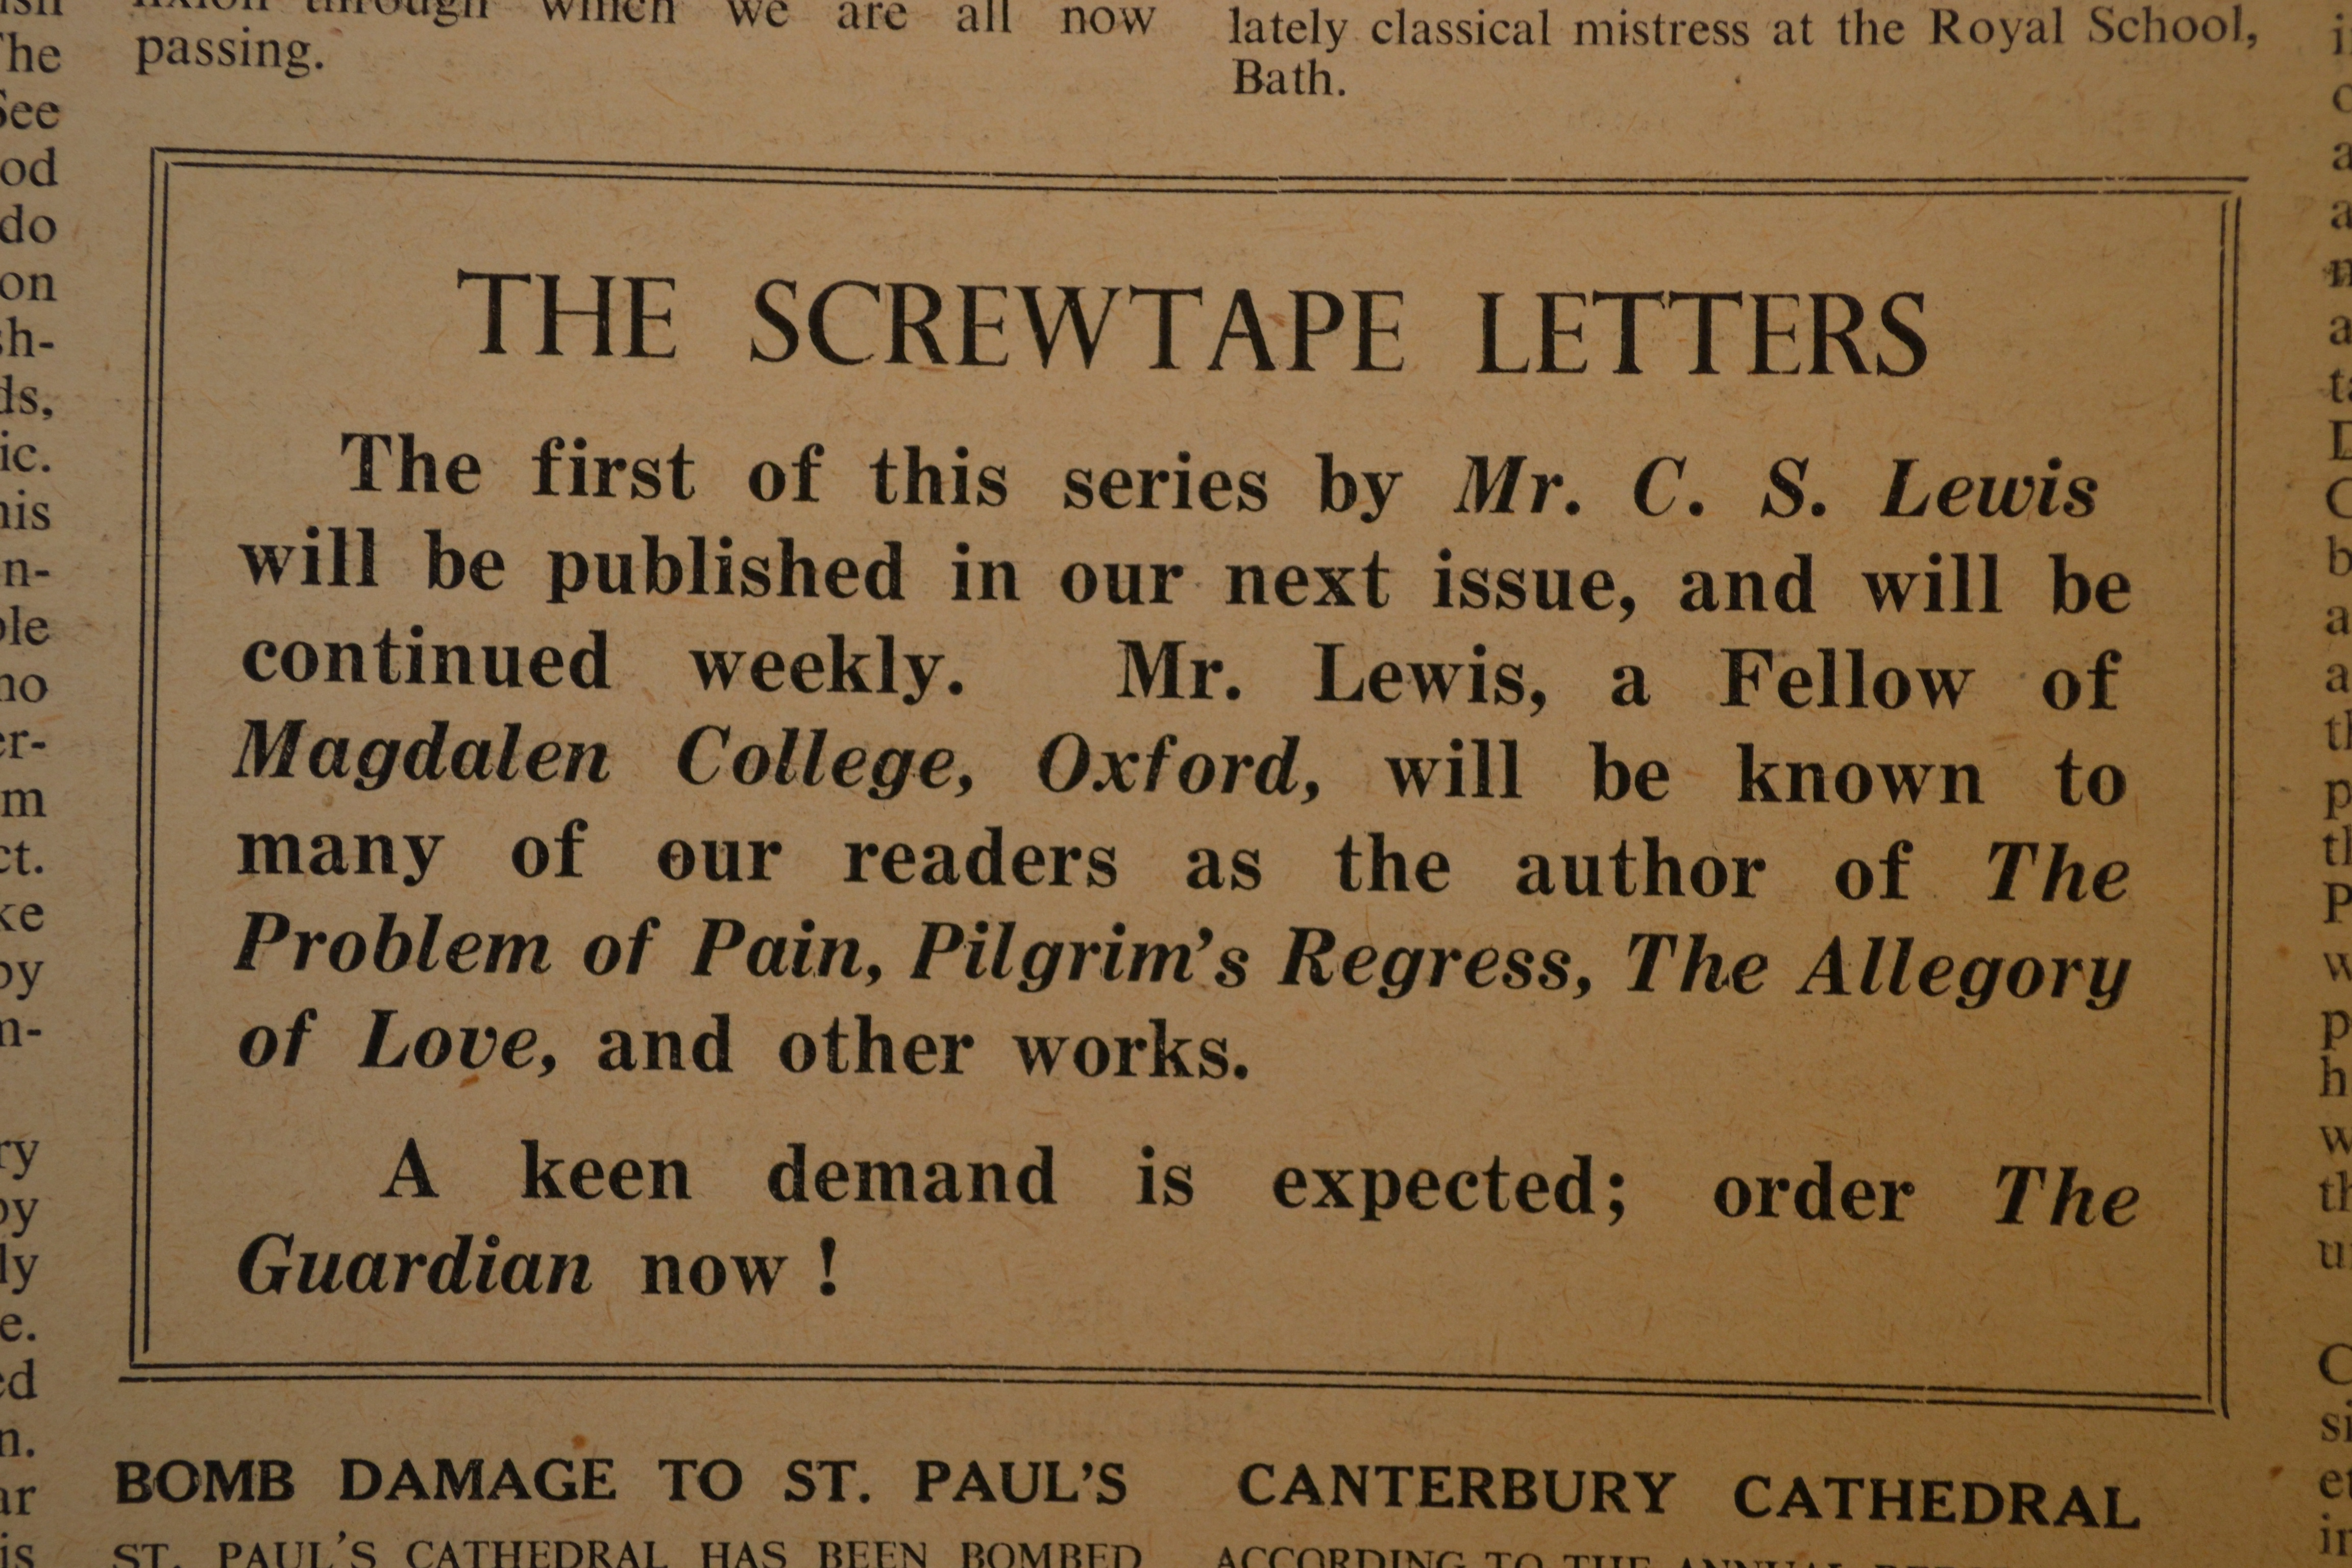 A Manuscript List and Timeline of The Screwtape Letters